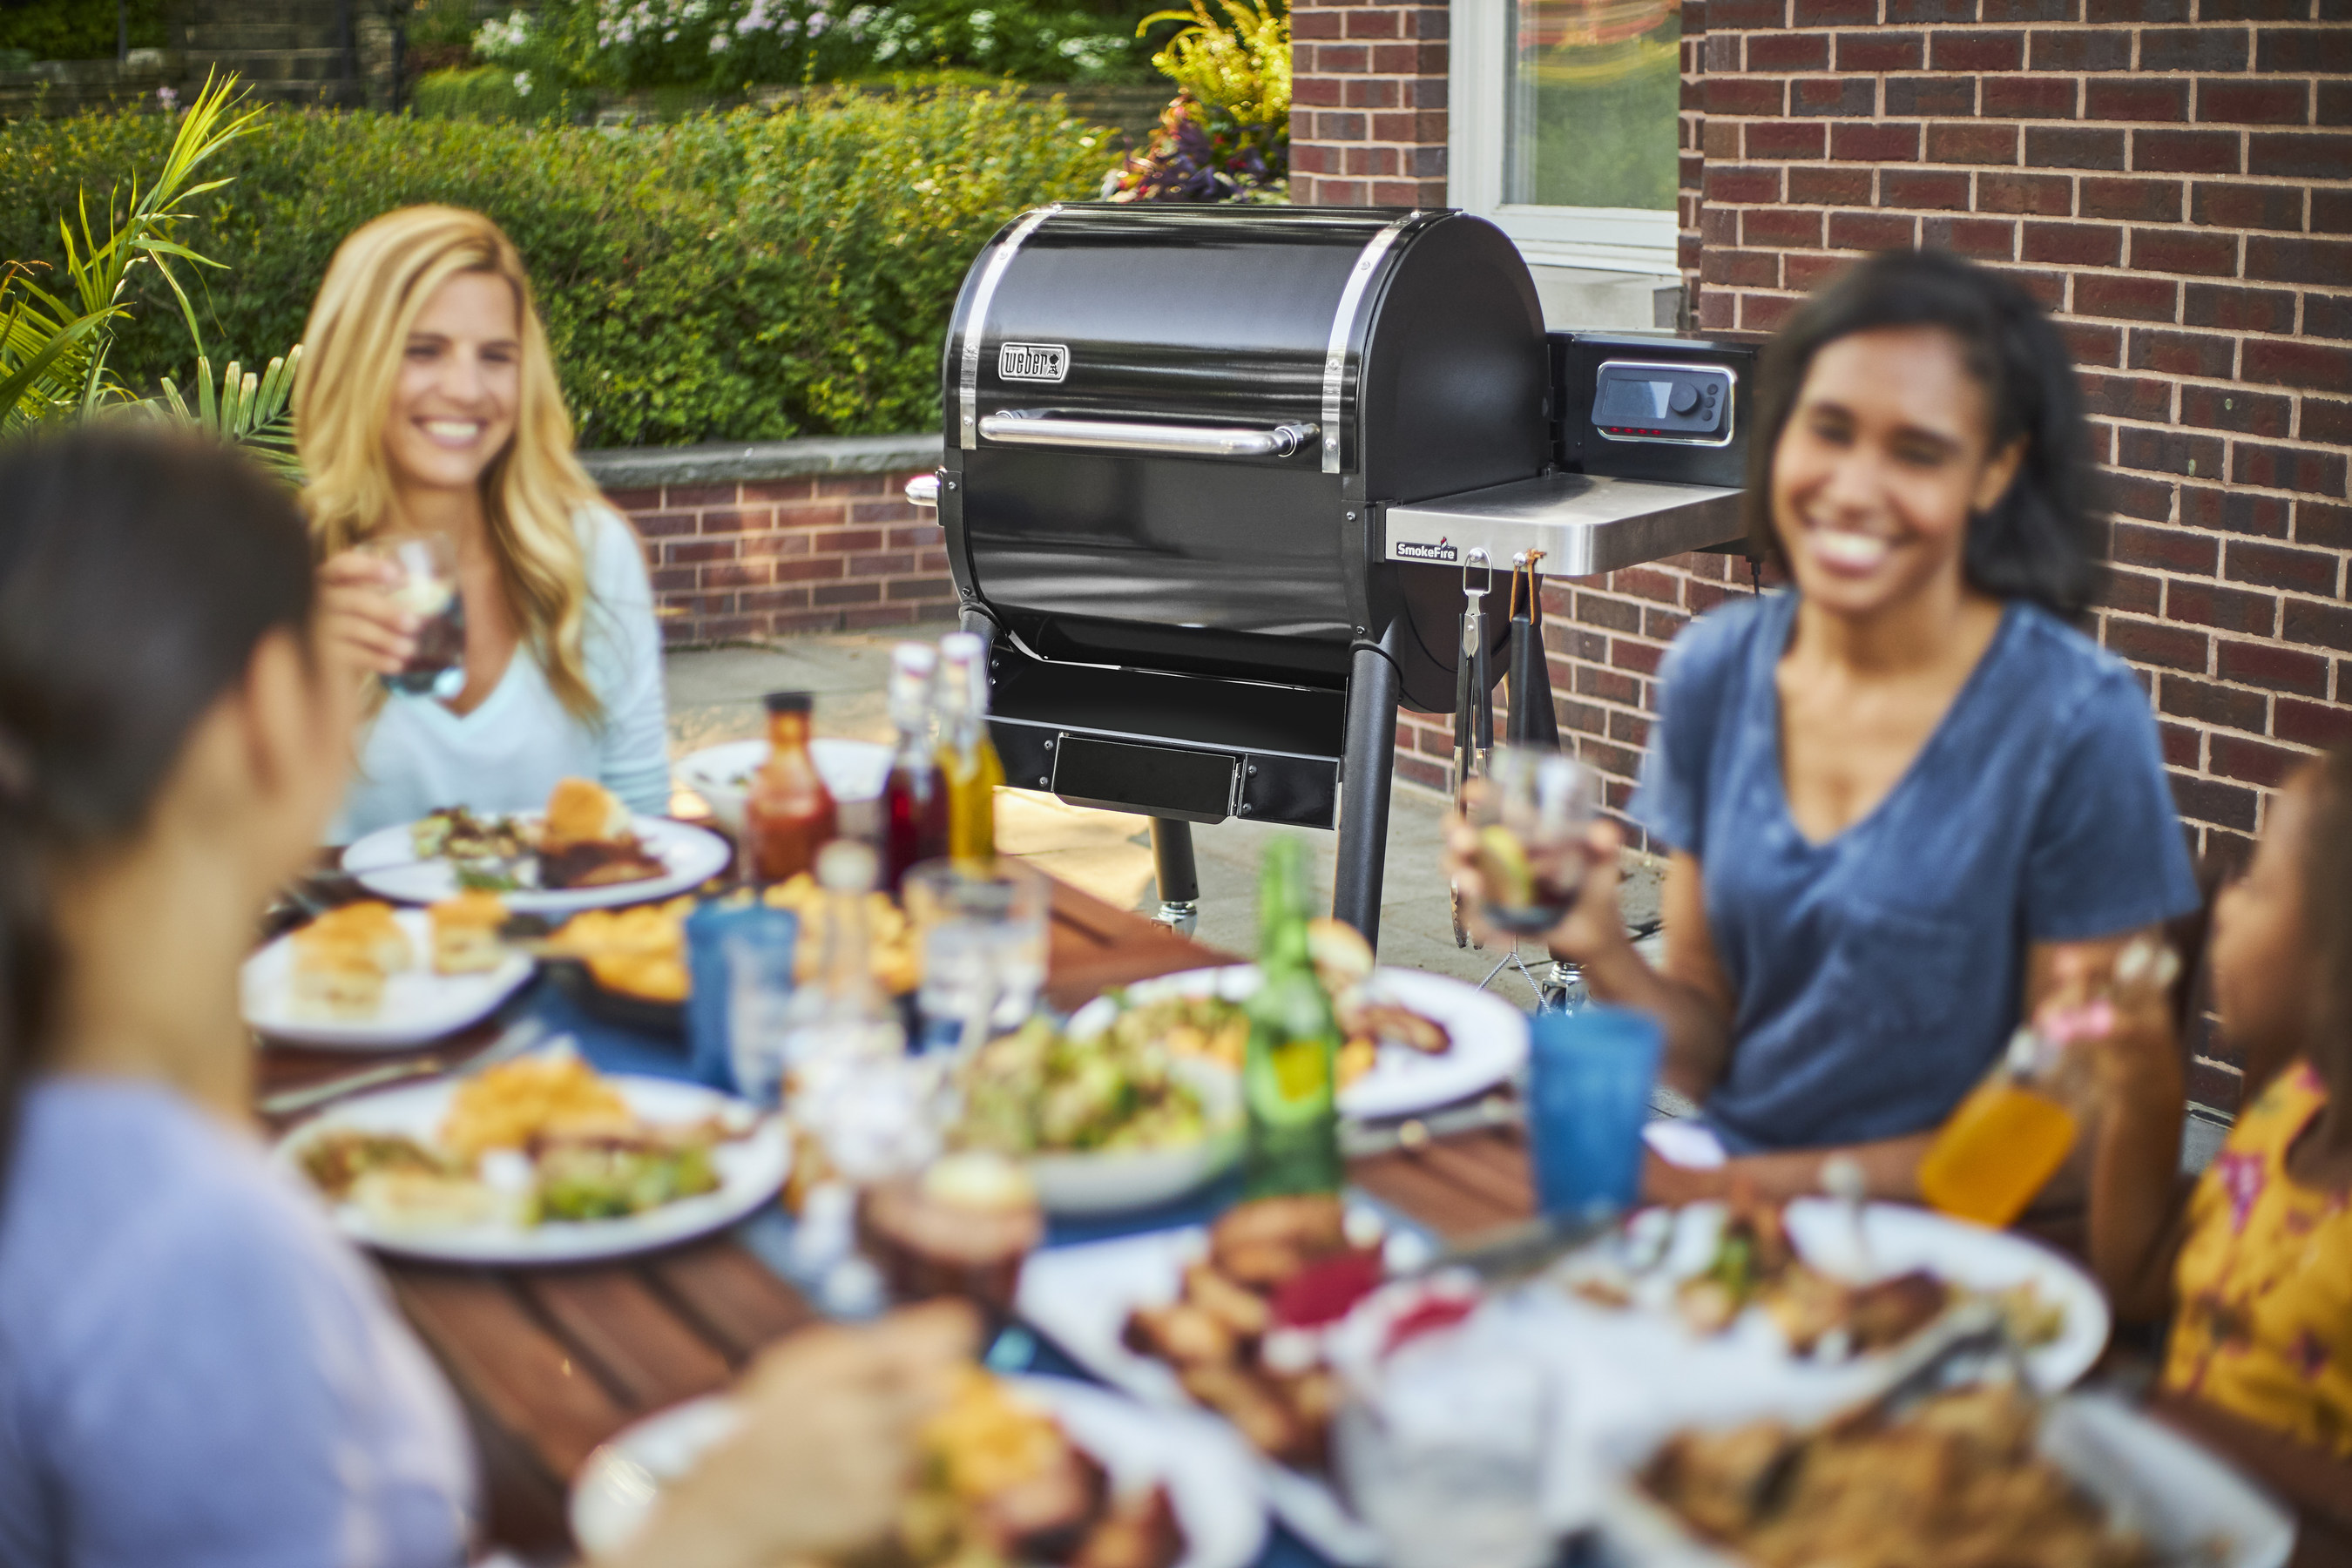 Weber's launches its first WiFi-enabled pellet grill